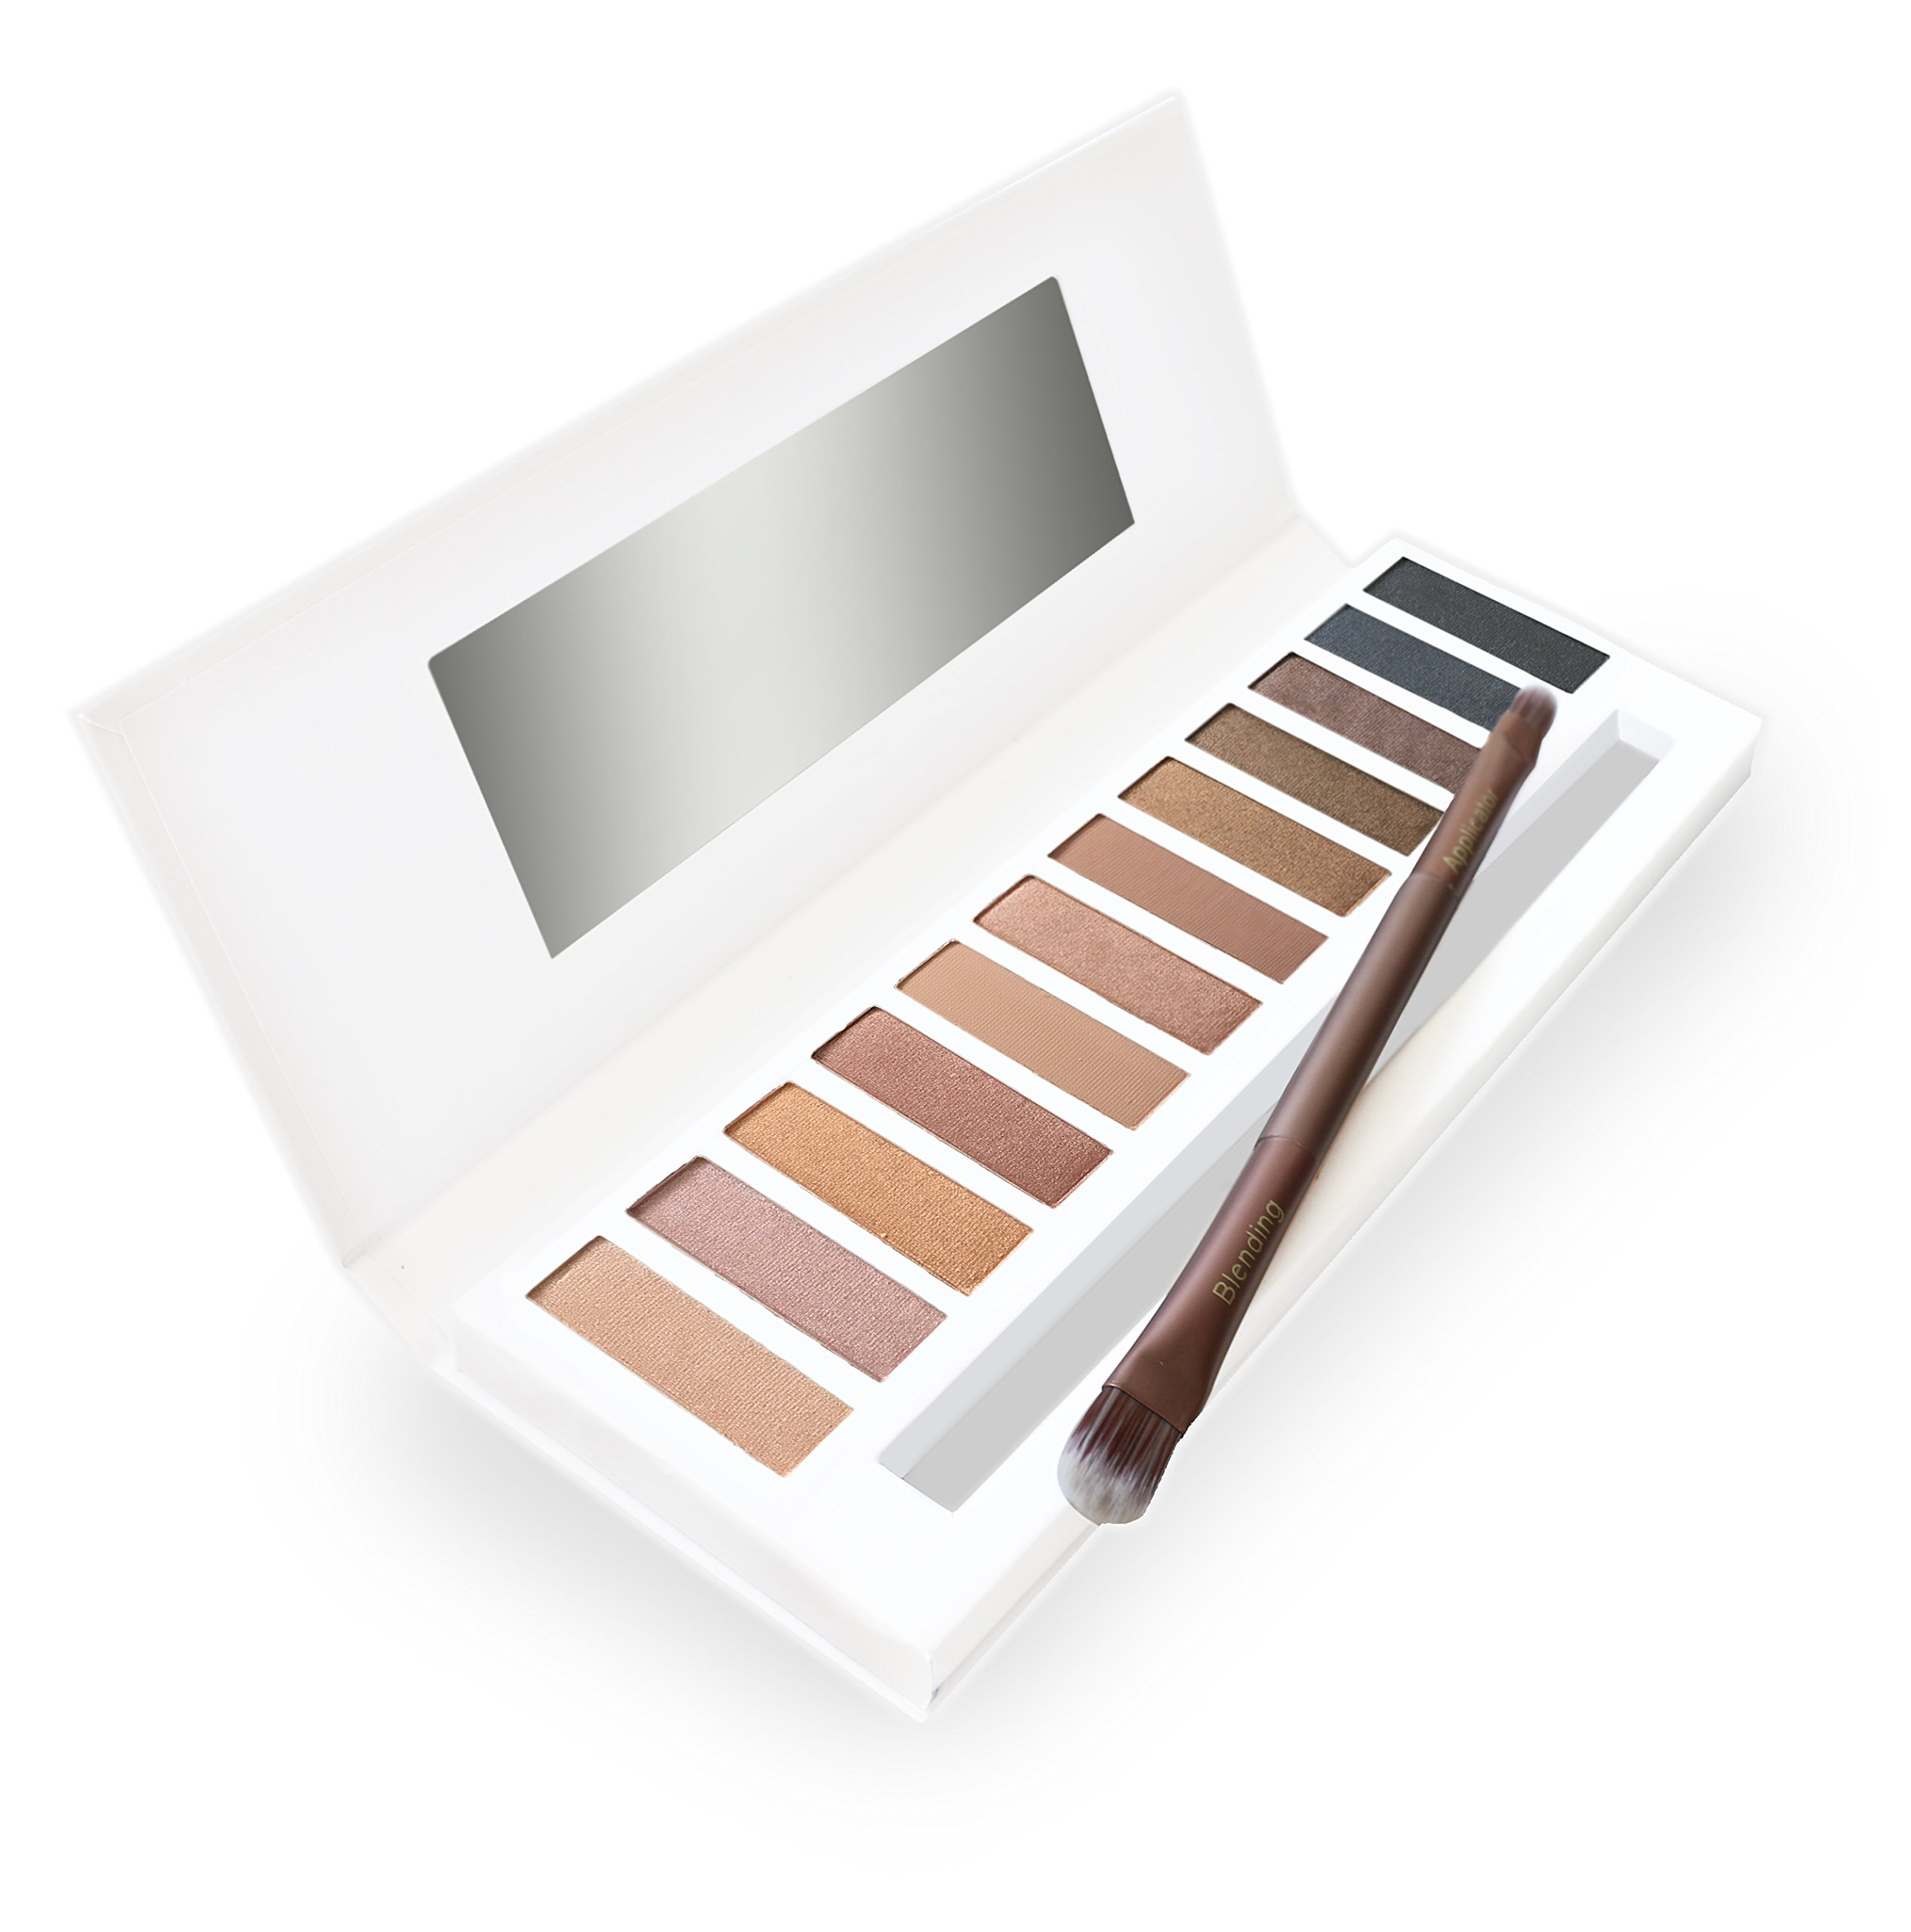 Lagure Eyeshadow Palette & Double-ended Brush - Matte & Shimmer 12 Colors - Best for Natural, Bronzed or Smokey Eye Makeup - Highly Pigmented, Vegan, Cruelty Free